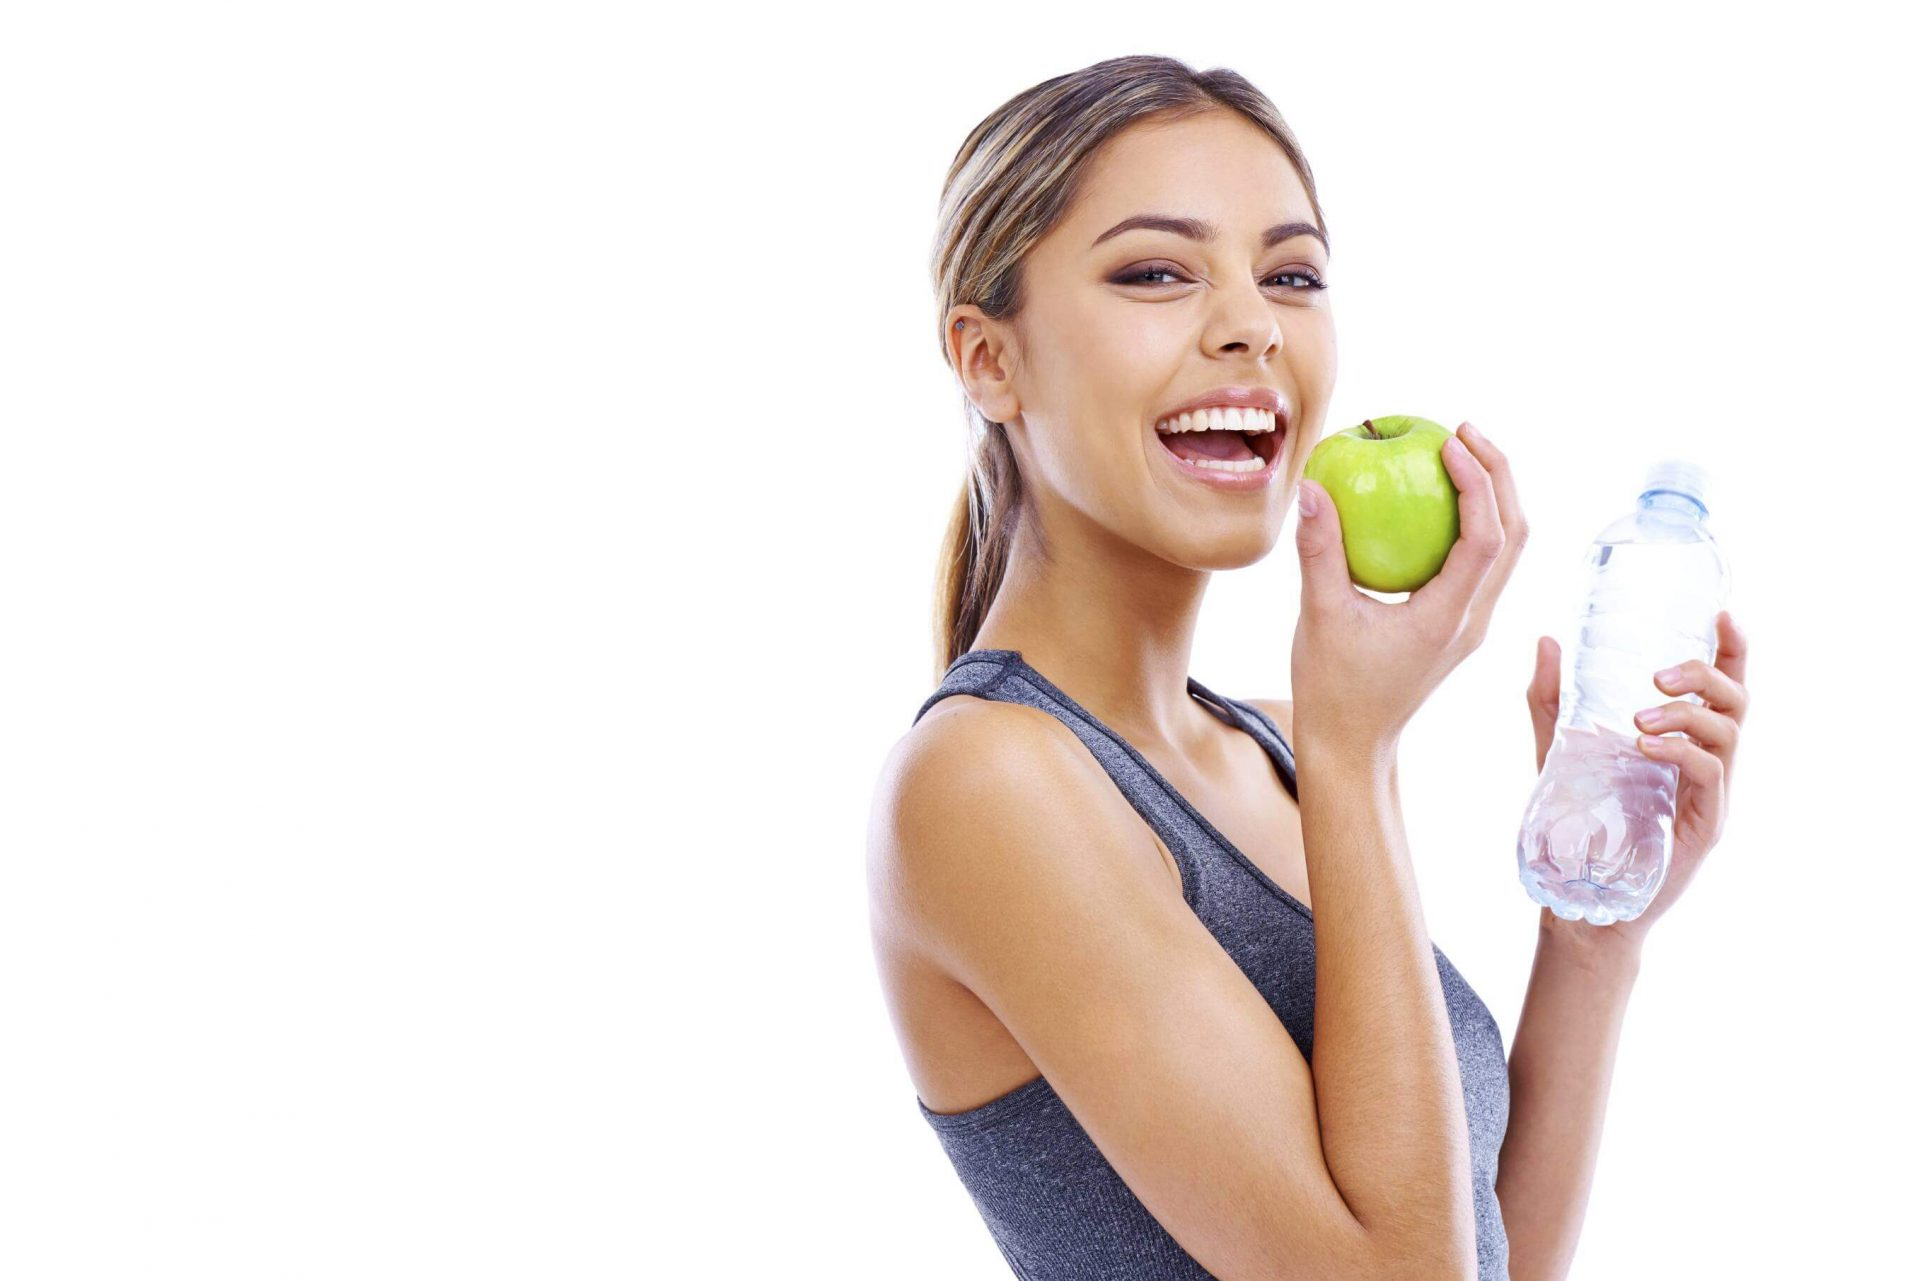 Portrait of a sporty young woman holding an apple and a bottle of water against a white background